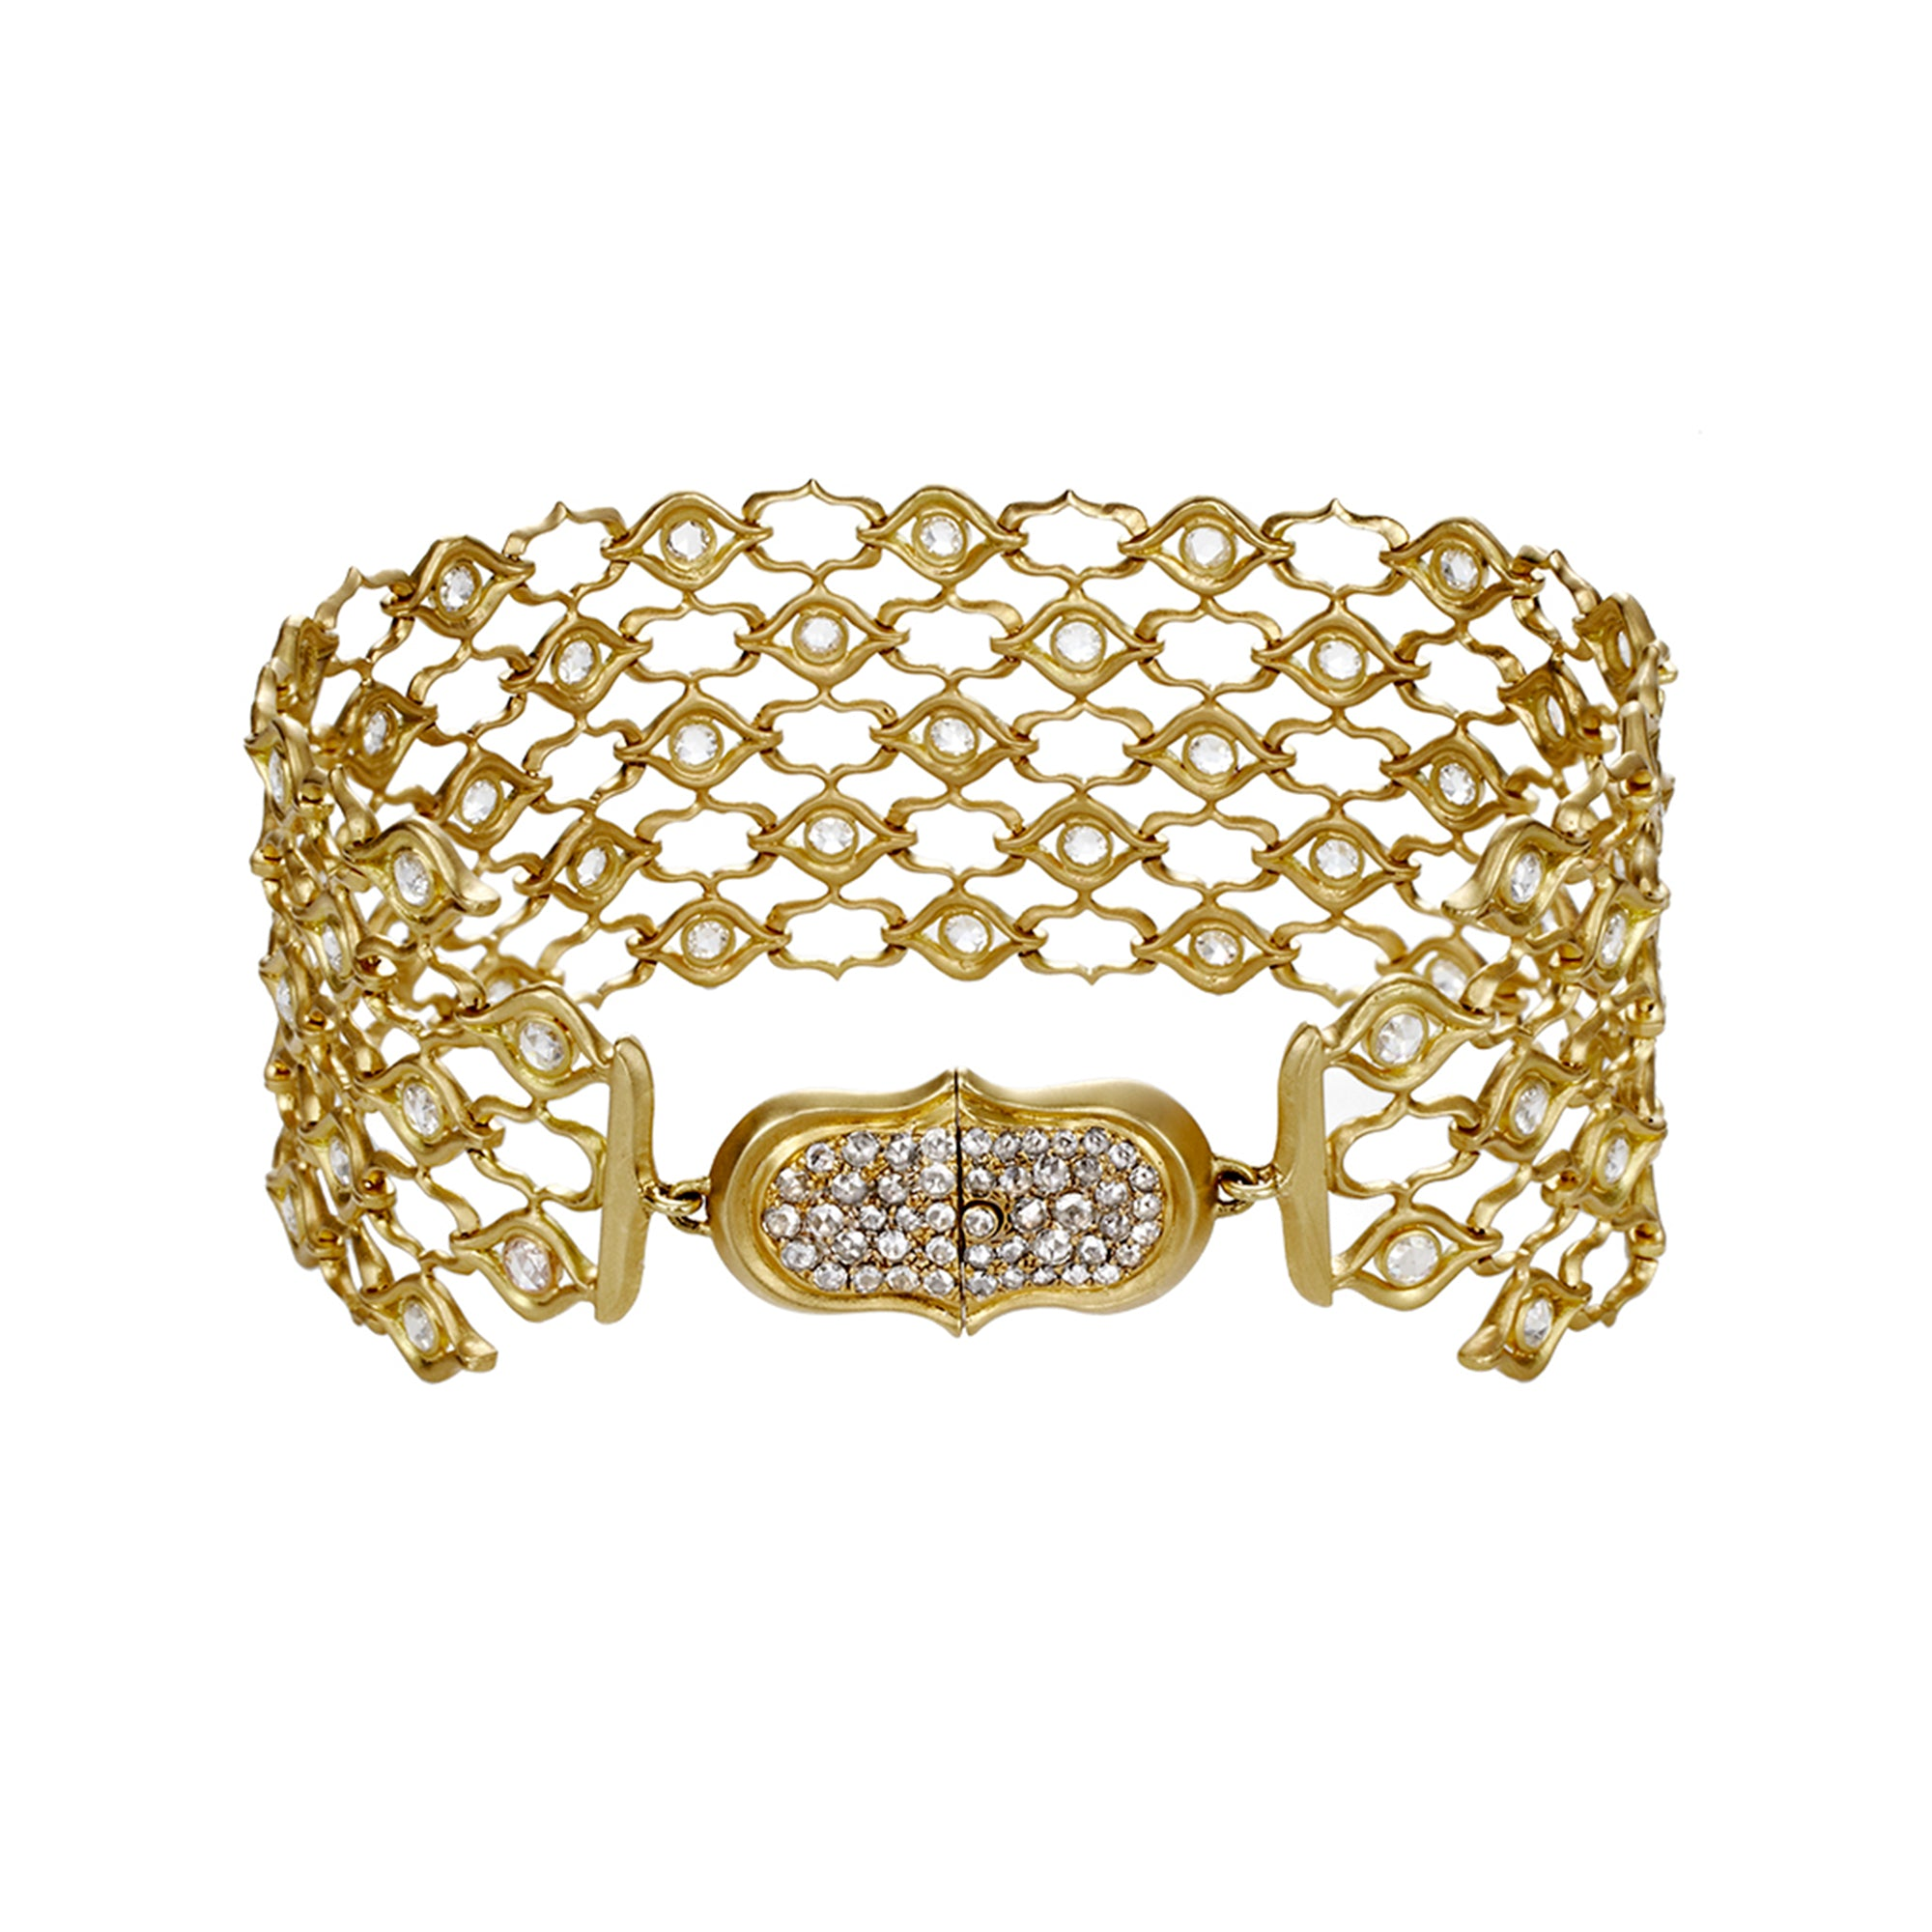 Gold & White Diamond Screen Pattern Chain Bracelet by Anahita for Broken English Jewelry